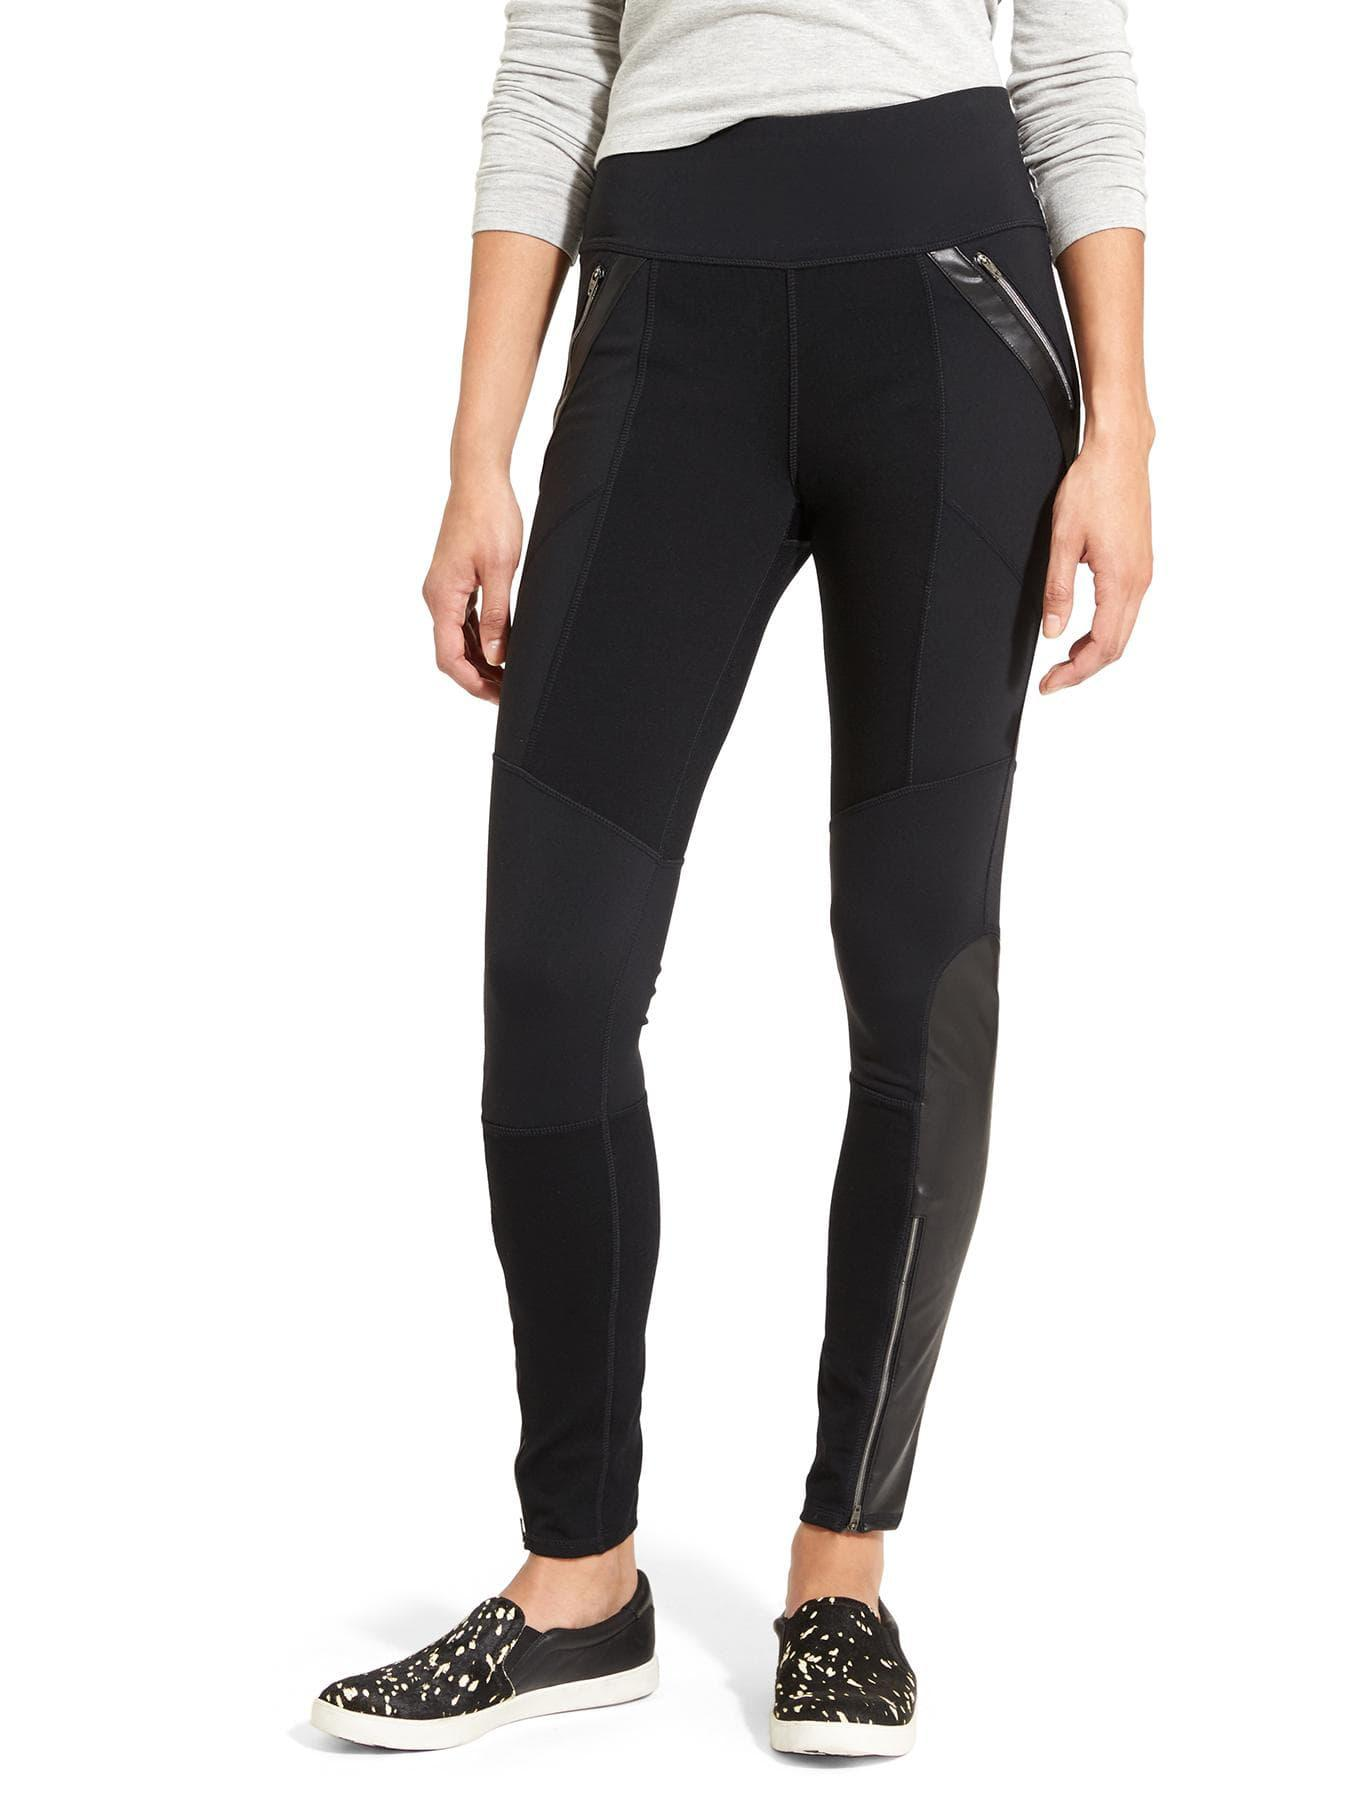 9c16c054c48bb Athleta Ponte Luxe Legging in Black - Lyst